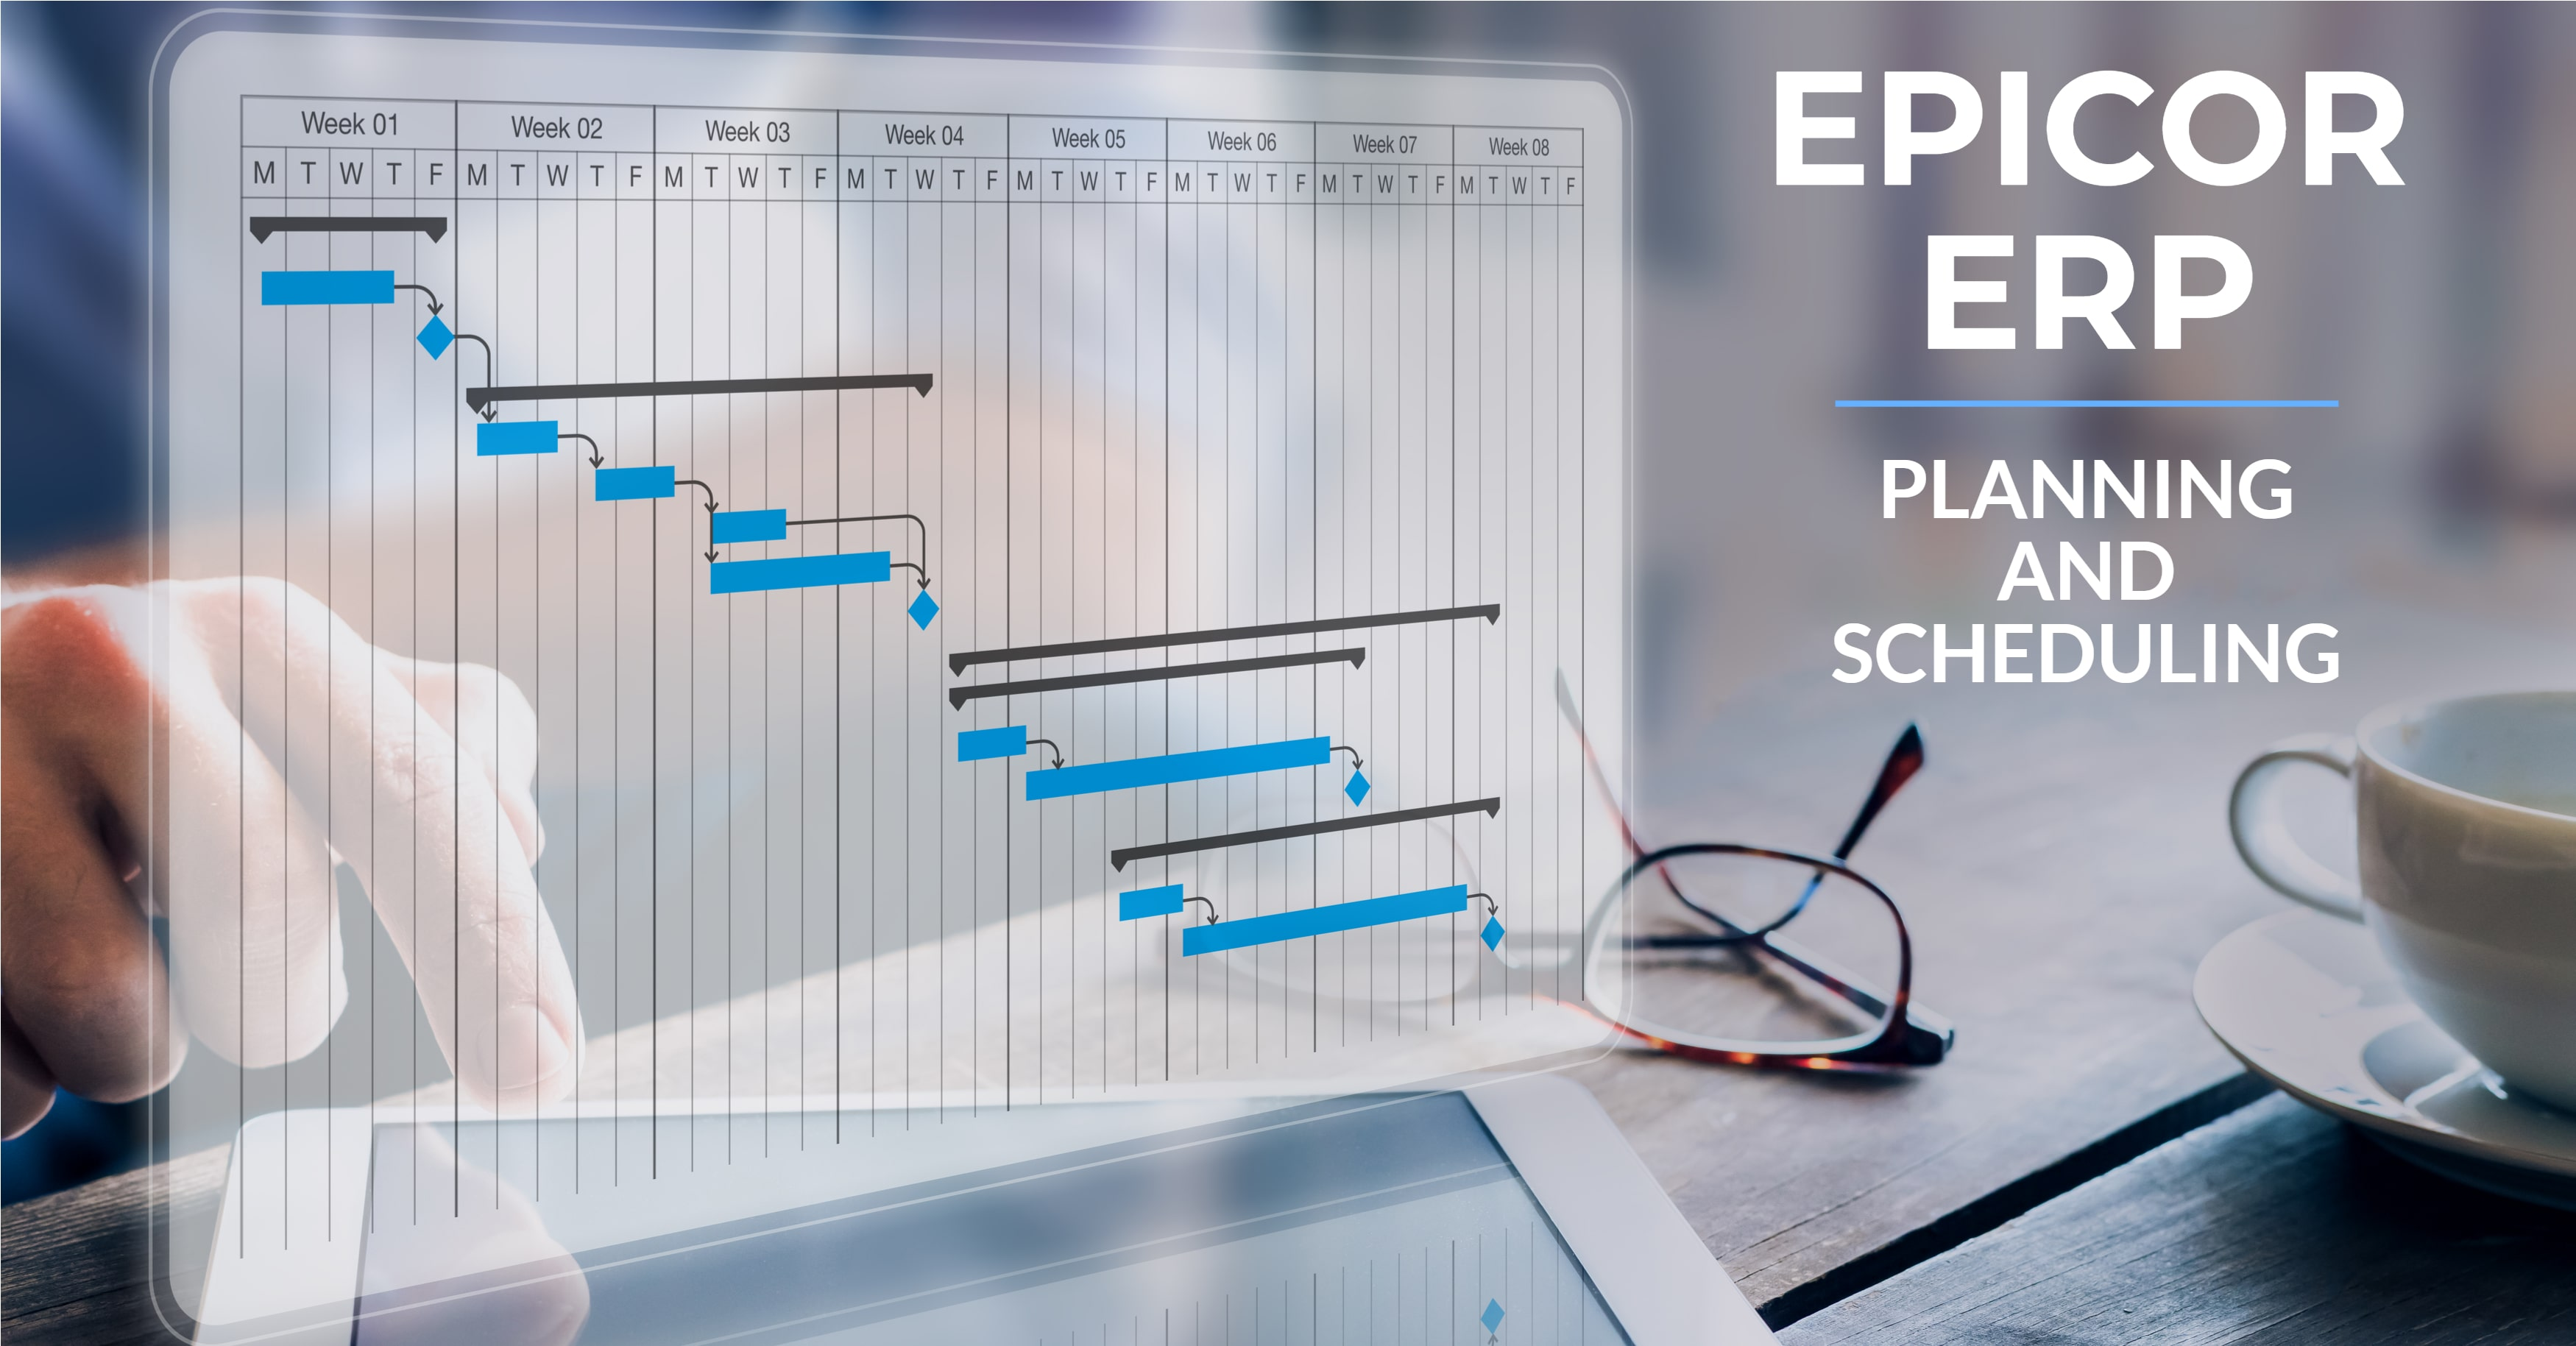 Epicor ERP Planning and Scheduling